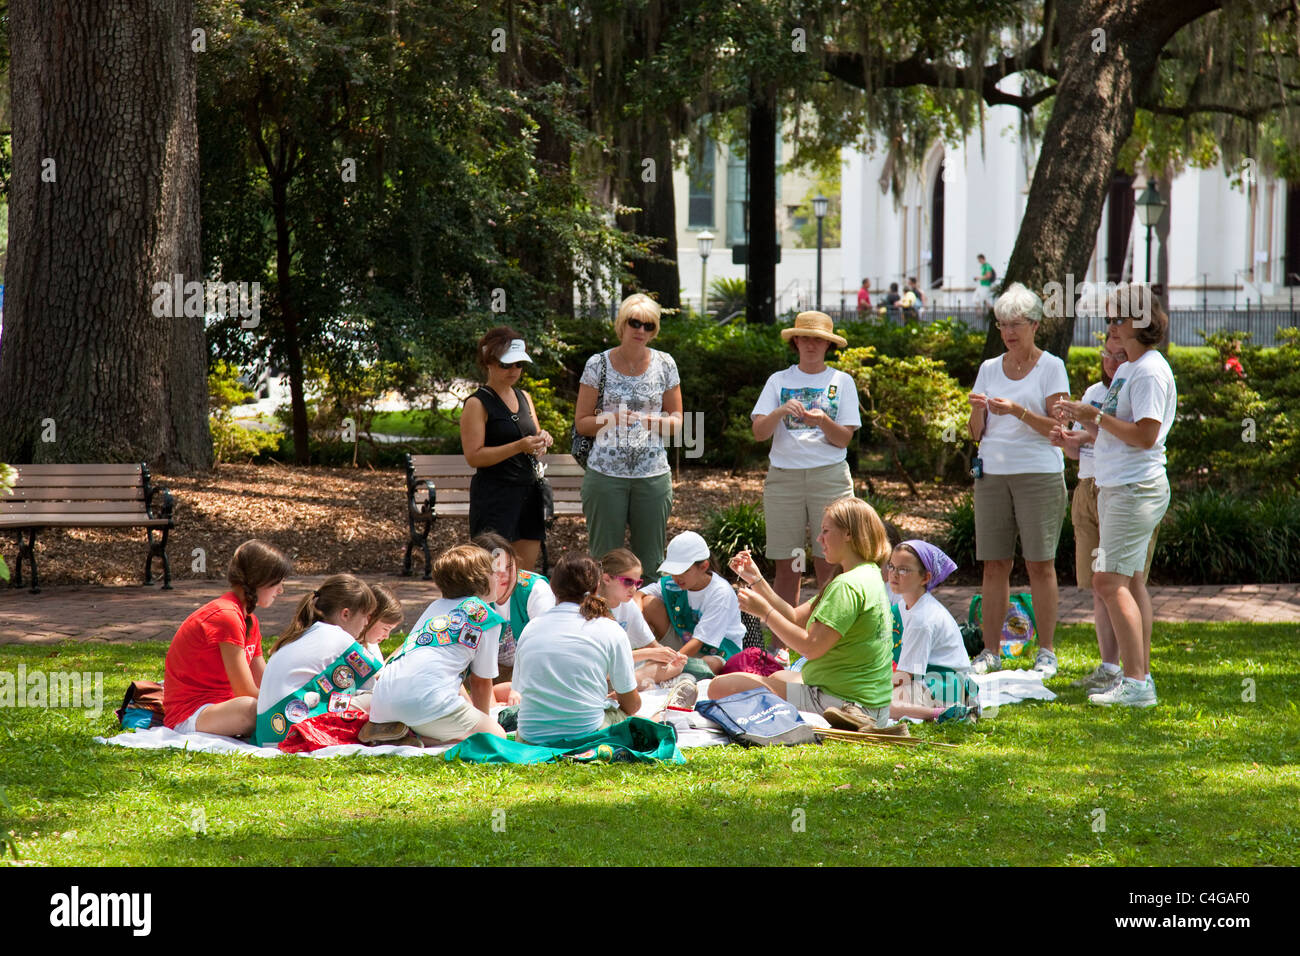 Girl Scout troop in Savannah, Georgia - Stock Image